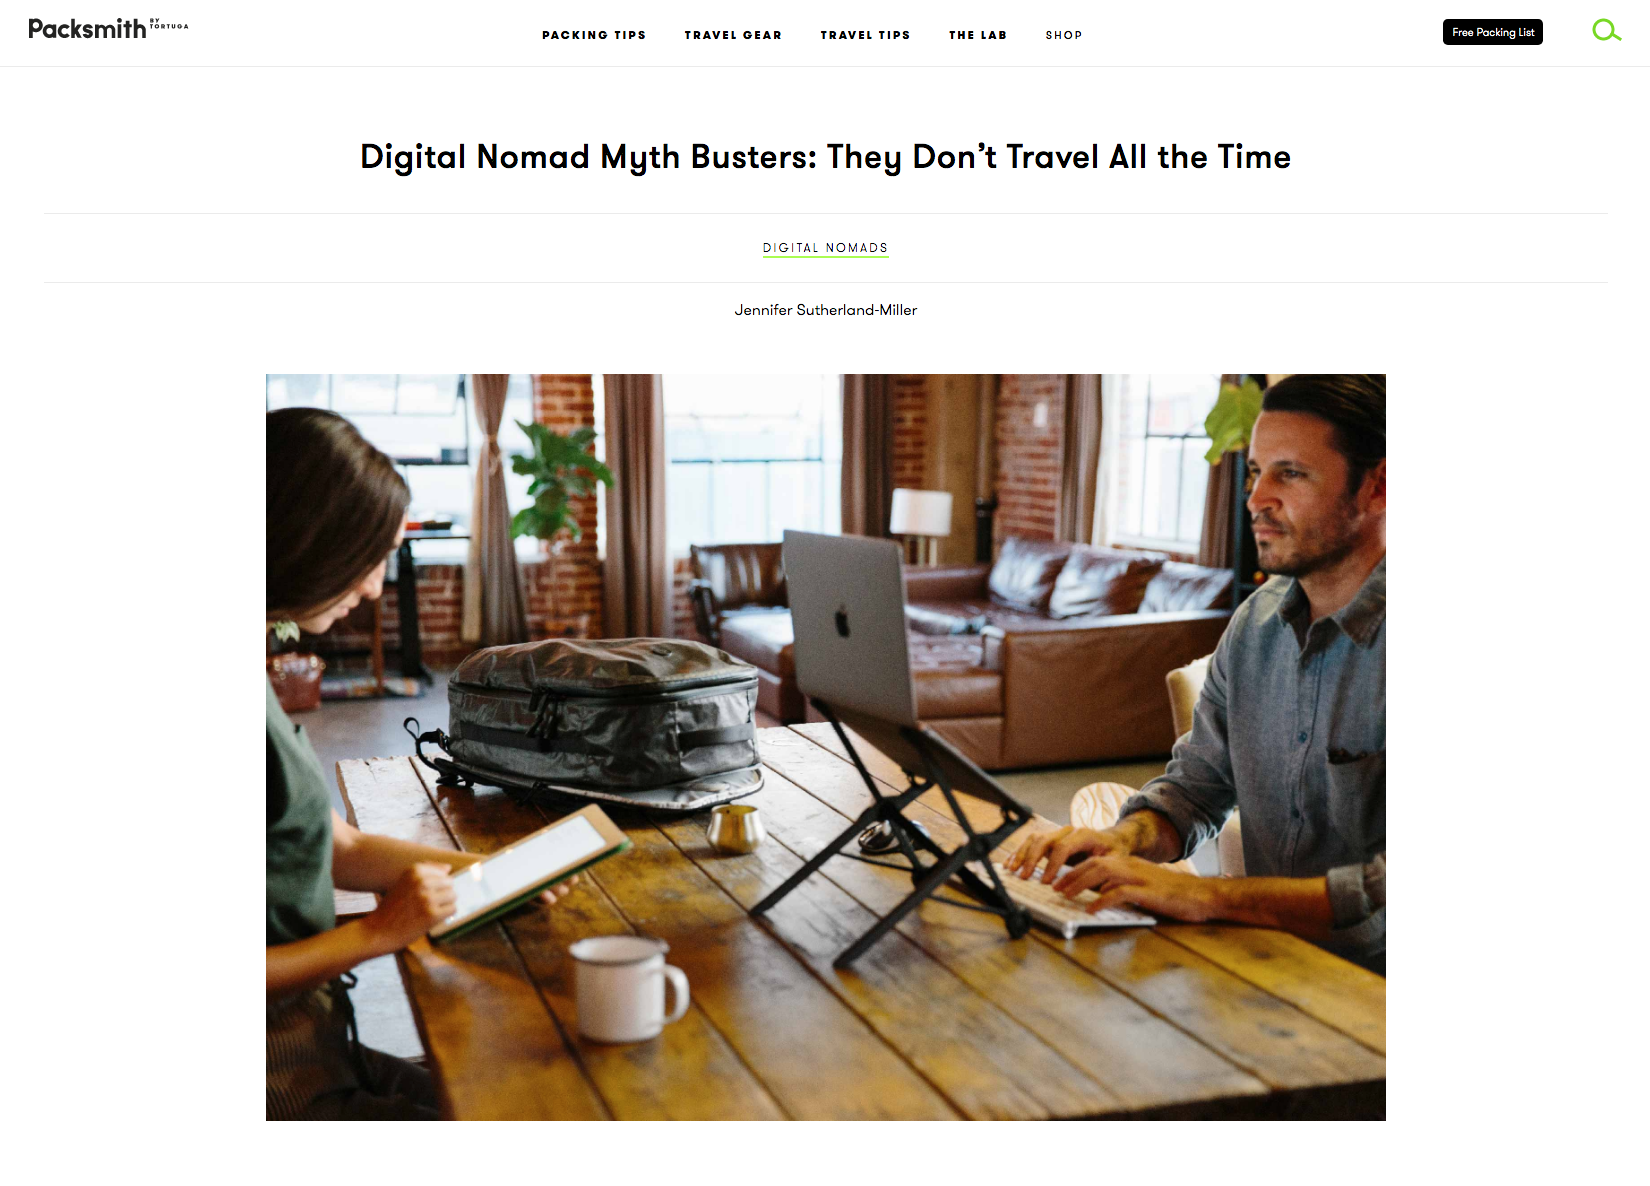 On being a digital nomad